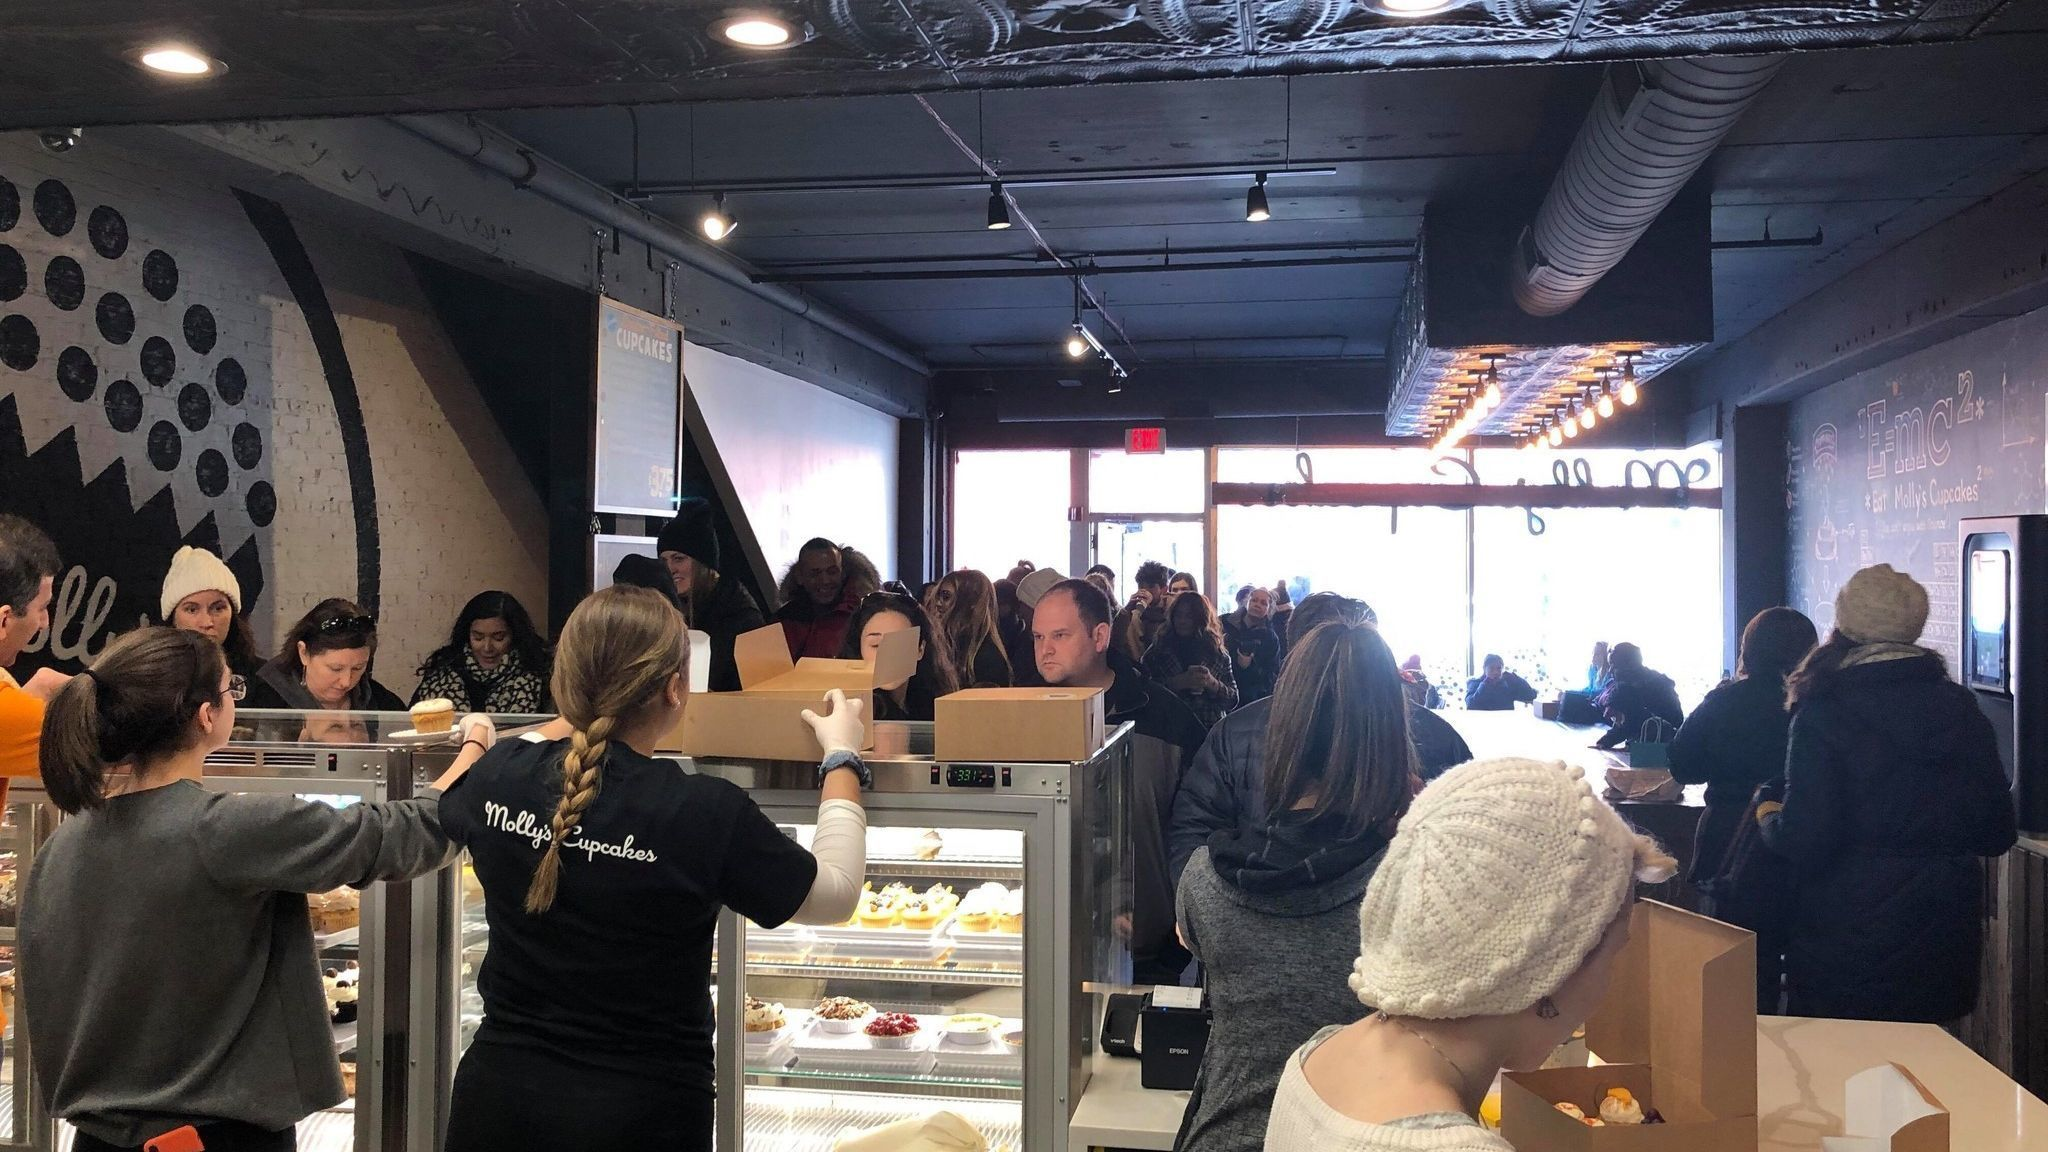 Long-awaited Molly's Cupcakes opens to big crowds in downtown Naperville, completely sells out in less than 3 hours on first day